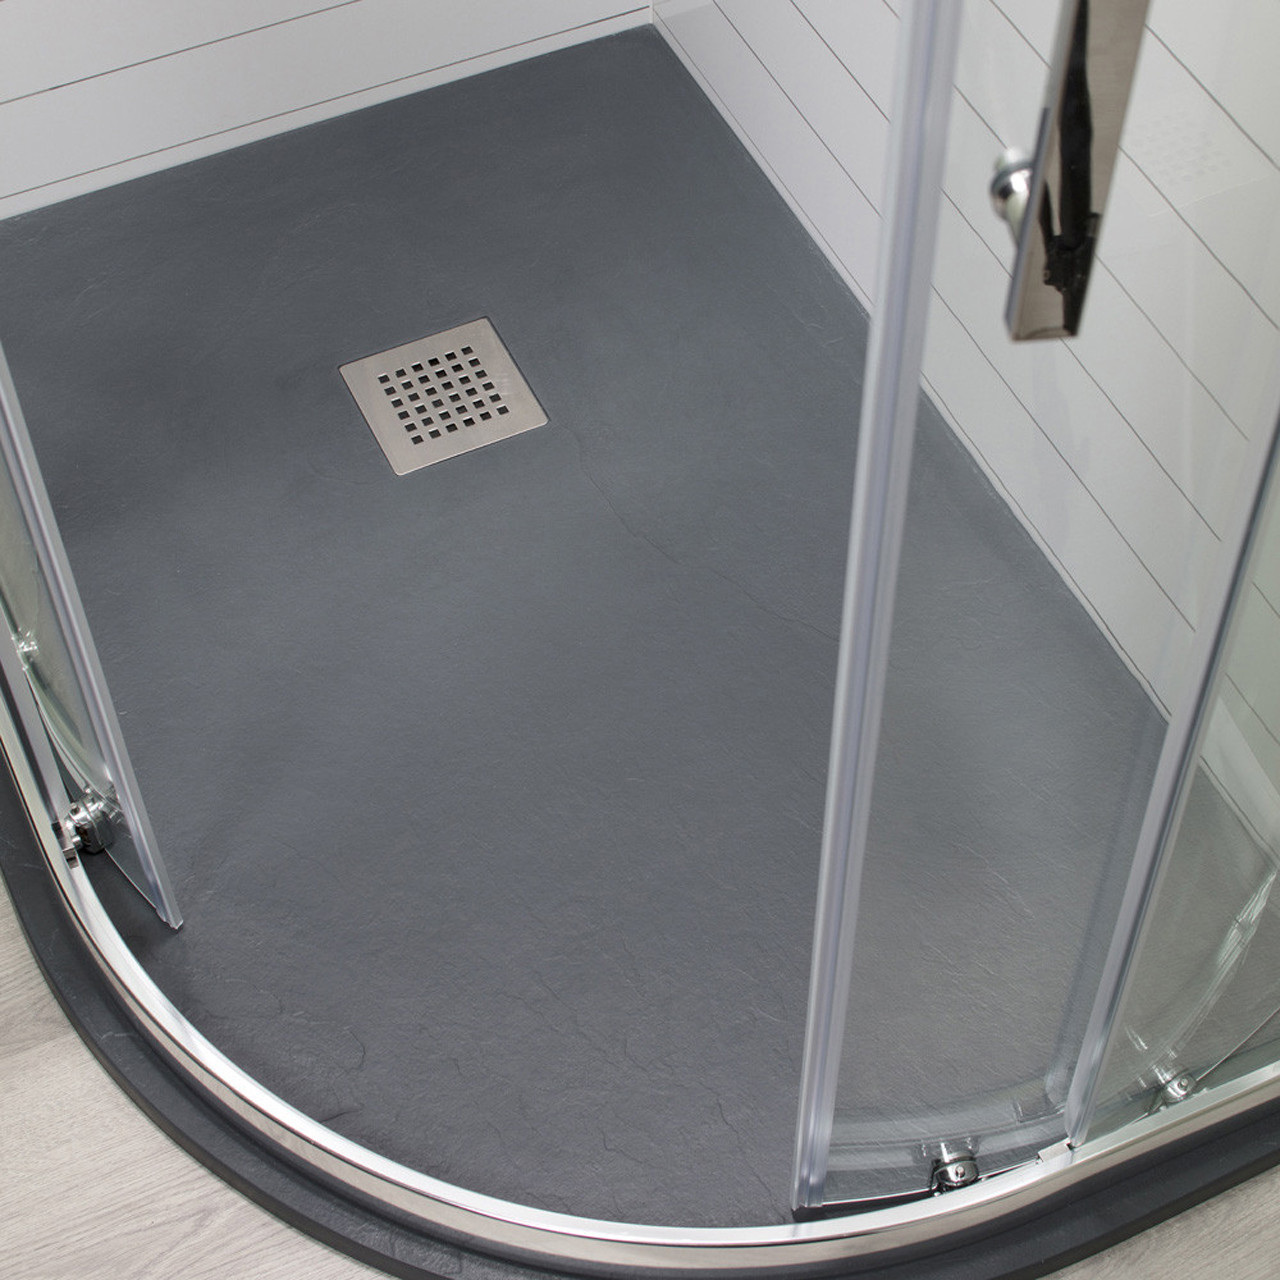 Wholestone Slate Right Hand 1200mm x 900mm Anthracite Offset Quadrant Shower Tray